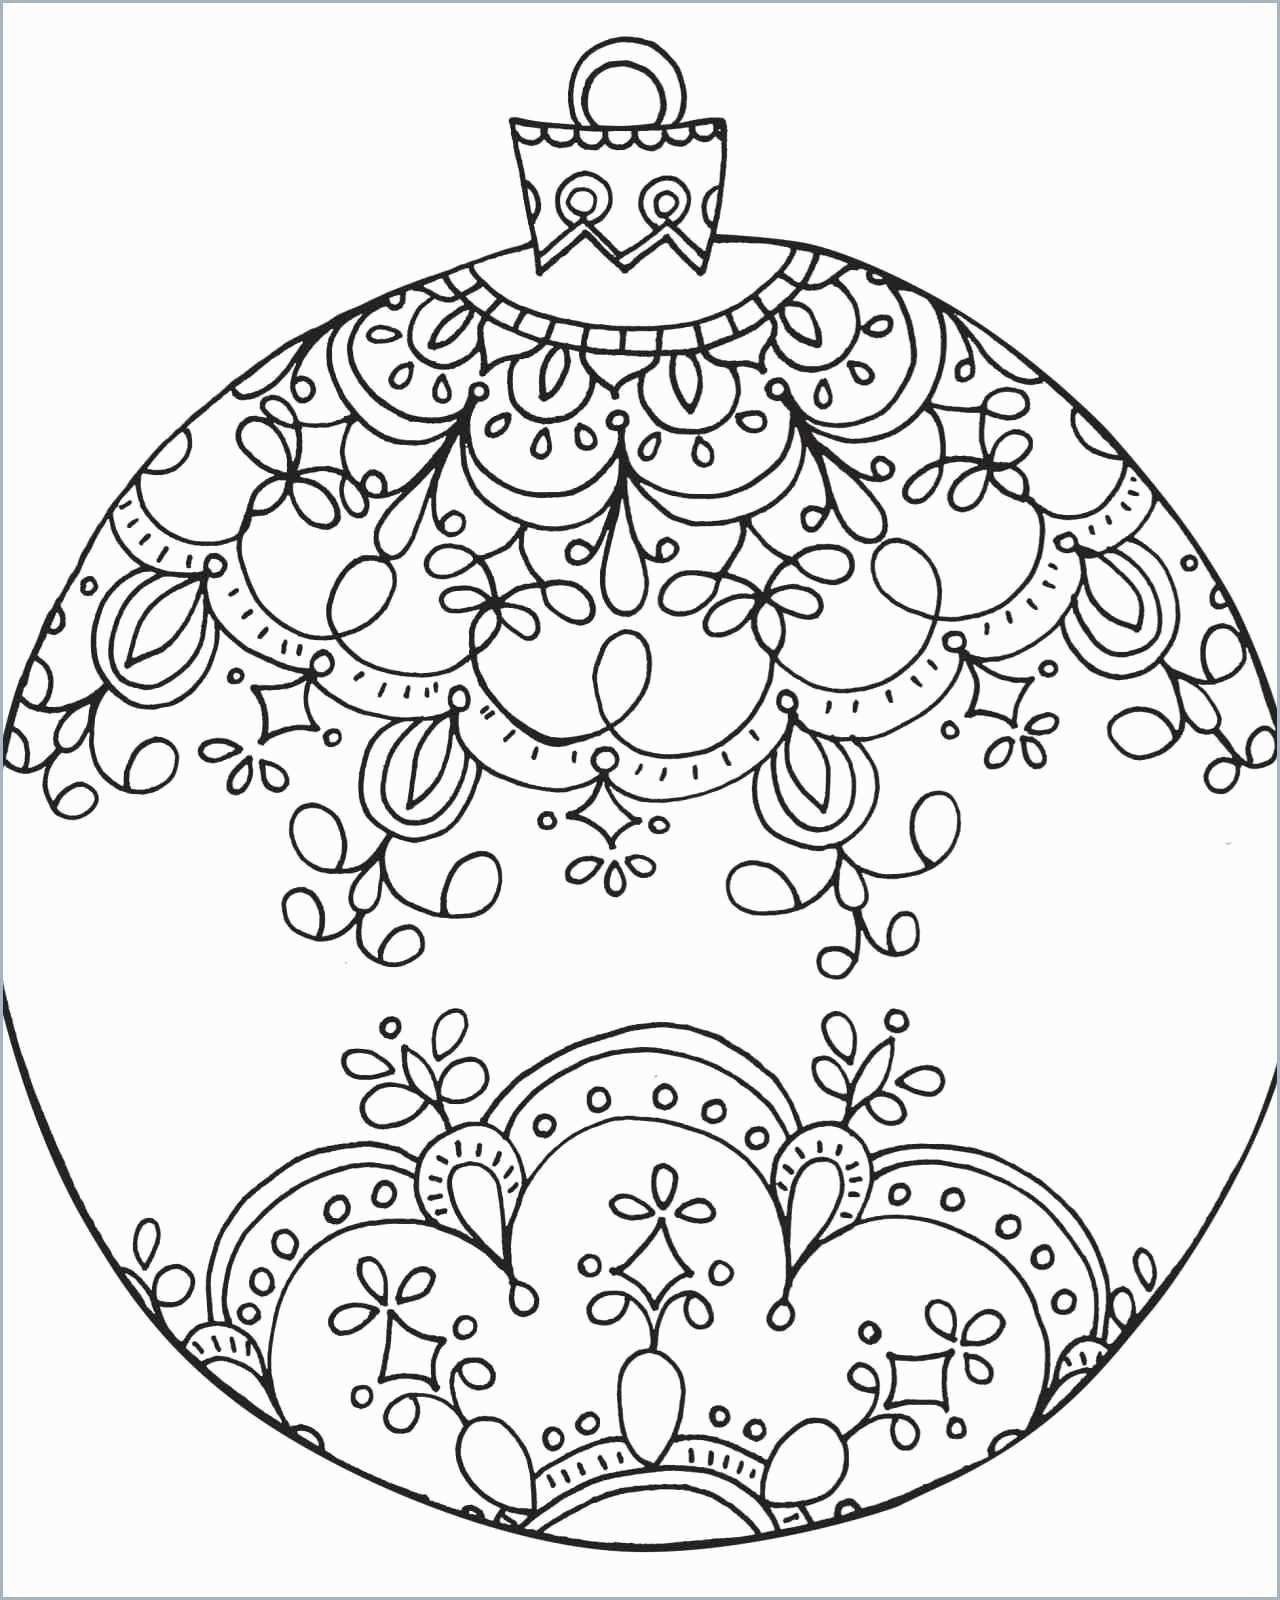 hight resolution of Math Coloring Worksheets 5th Grade Elegant Coloring Pages 5th Grade B…    Printable christmas coloring pages